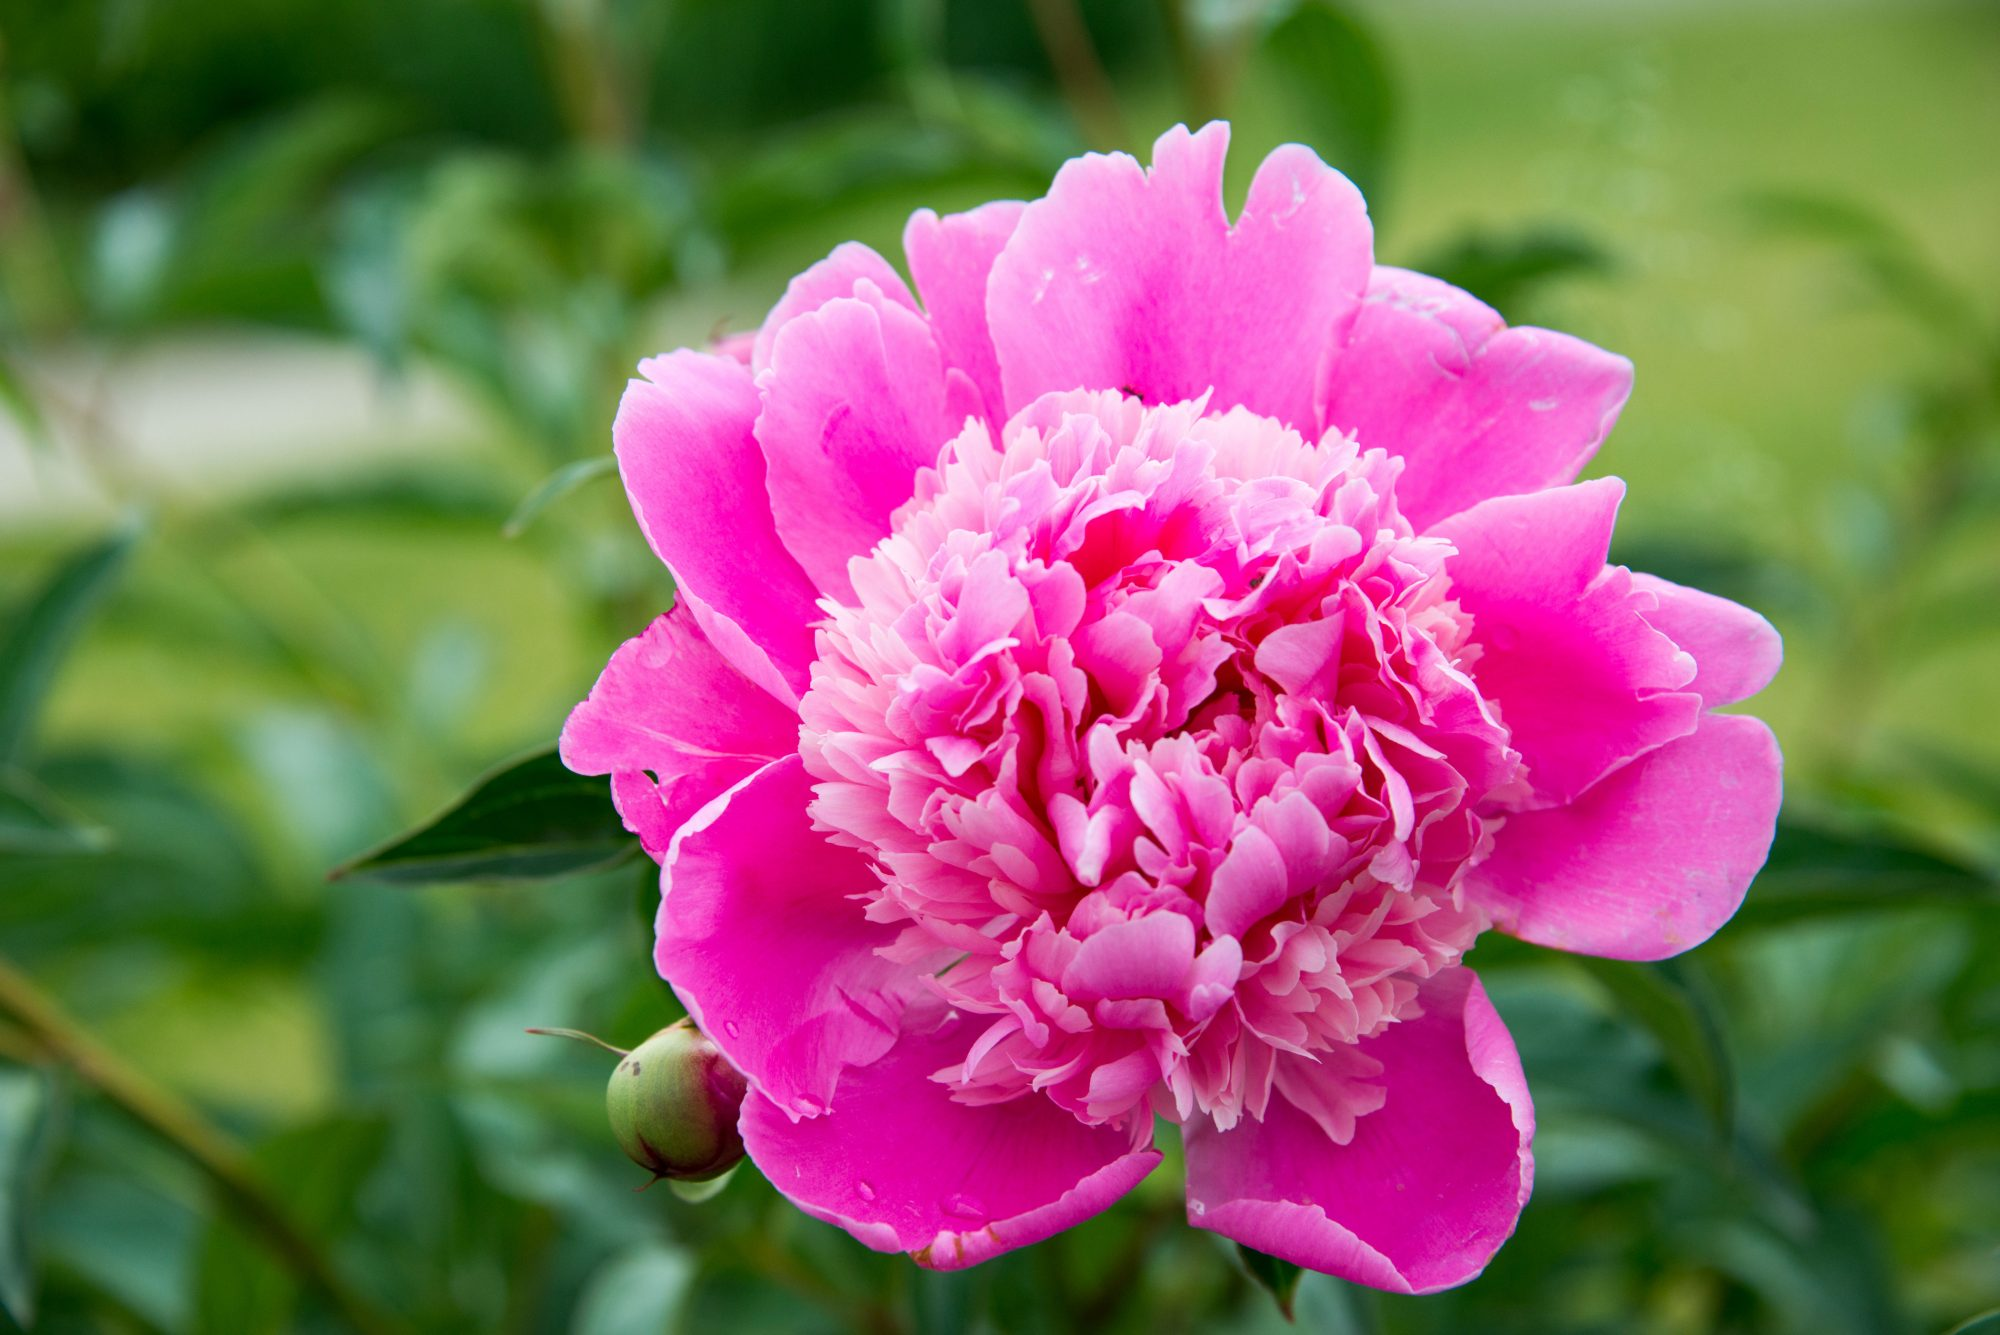 Blossoming Pink Peony